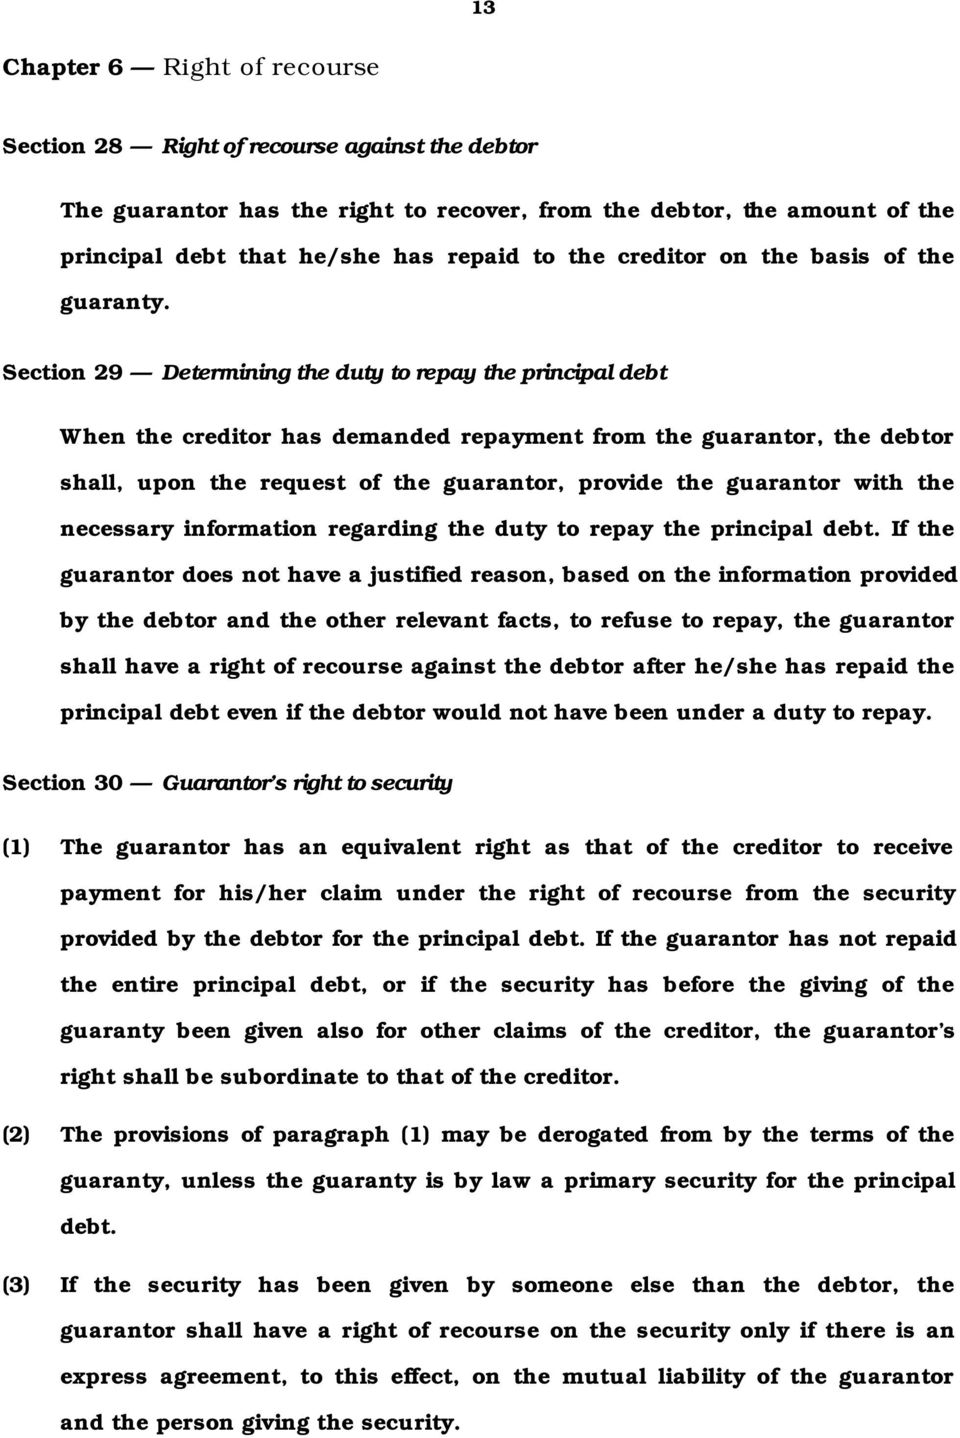 Section 29 Determining the duty to repay the principal debt When the creditor has demanded repayment from the guarantor, the debtor shall, upon the request of the guarantor, provide the guarantor